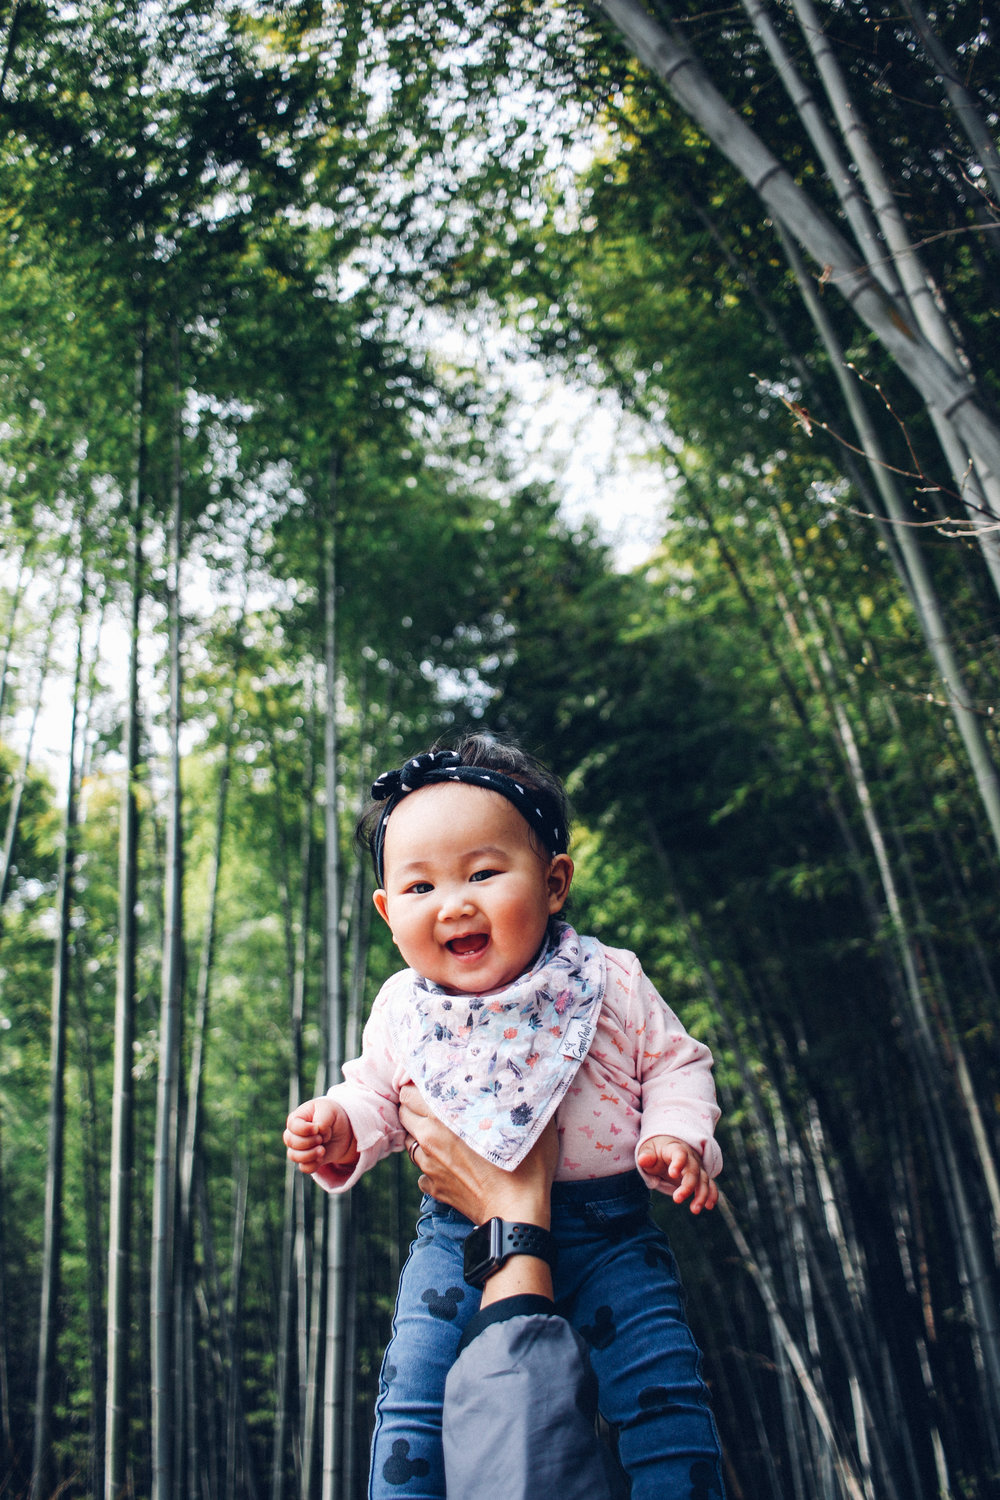 3. ARASHIYAMA TAYAH Tayas was just 8 months old when she traveled all the way to Japan with the fam. She was in her chubby baby faze and we all loved it. When we went to Arashiyama, she happily sat in the stroller or ergo, bouncing along with the rest of us to enjoy the views.